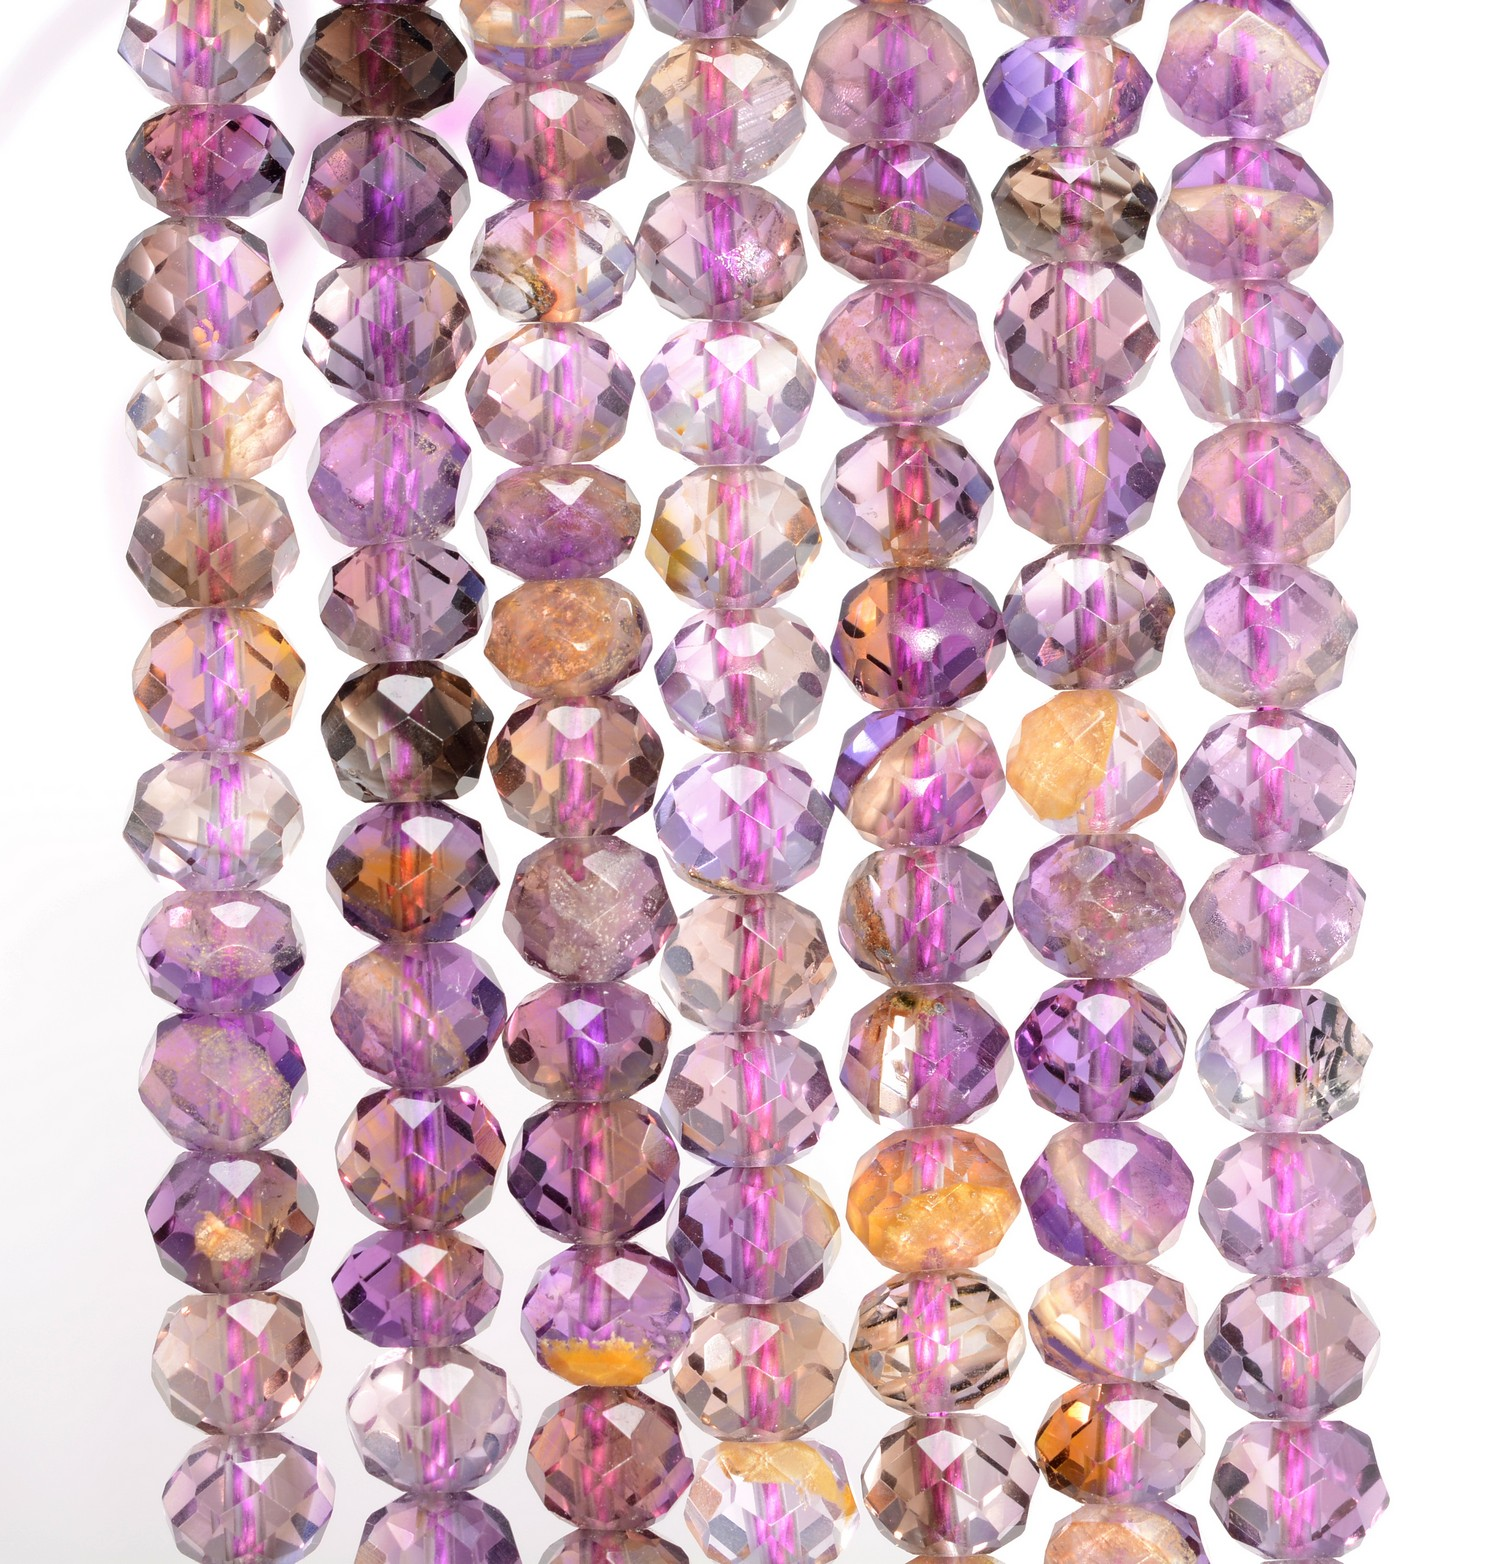 5X3MM AMETRINE GEMSTONE GRADE AAA MICRO FACETED RONDELLE LOOSE BEADS 15.5/""